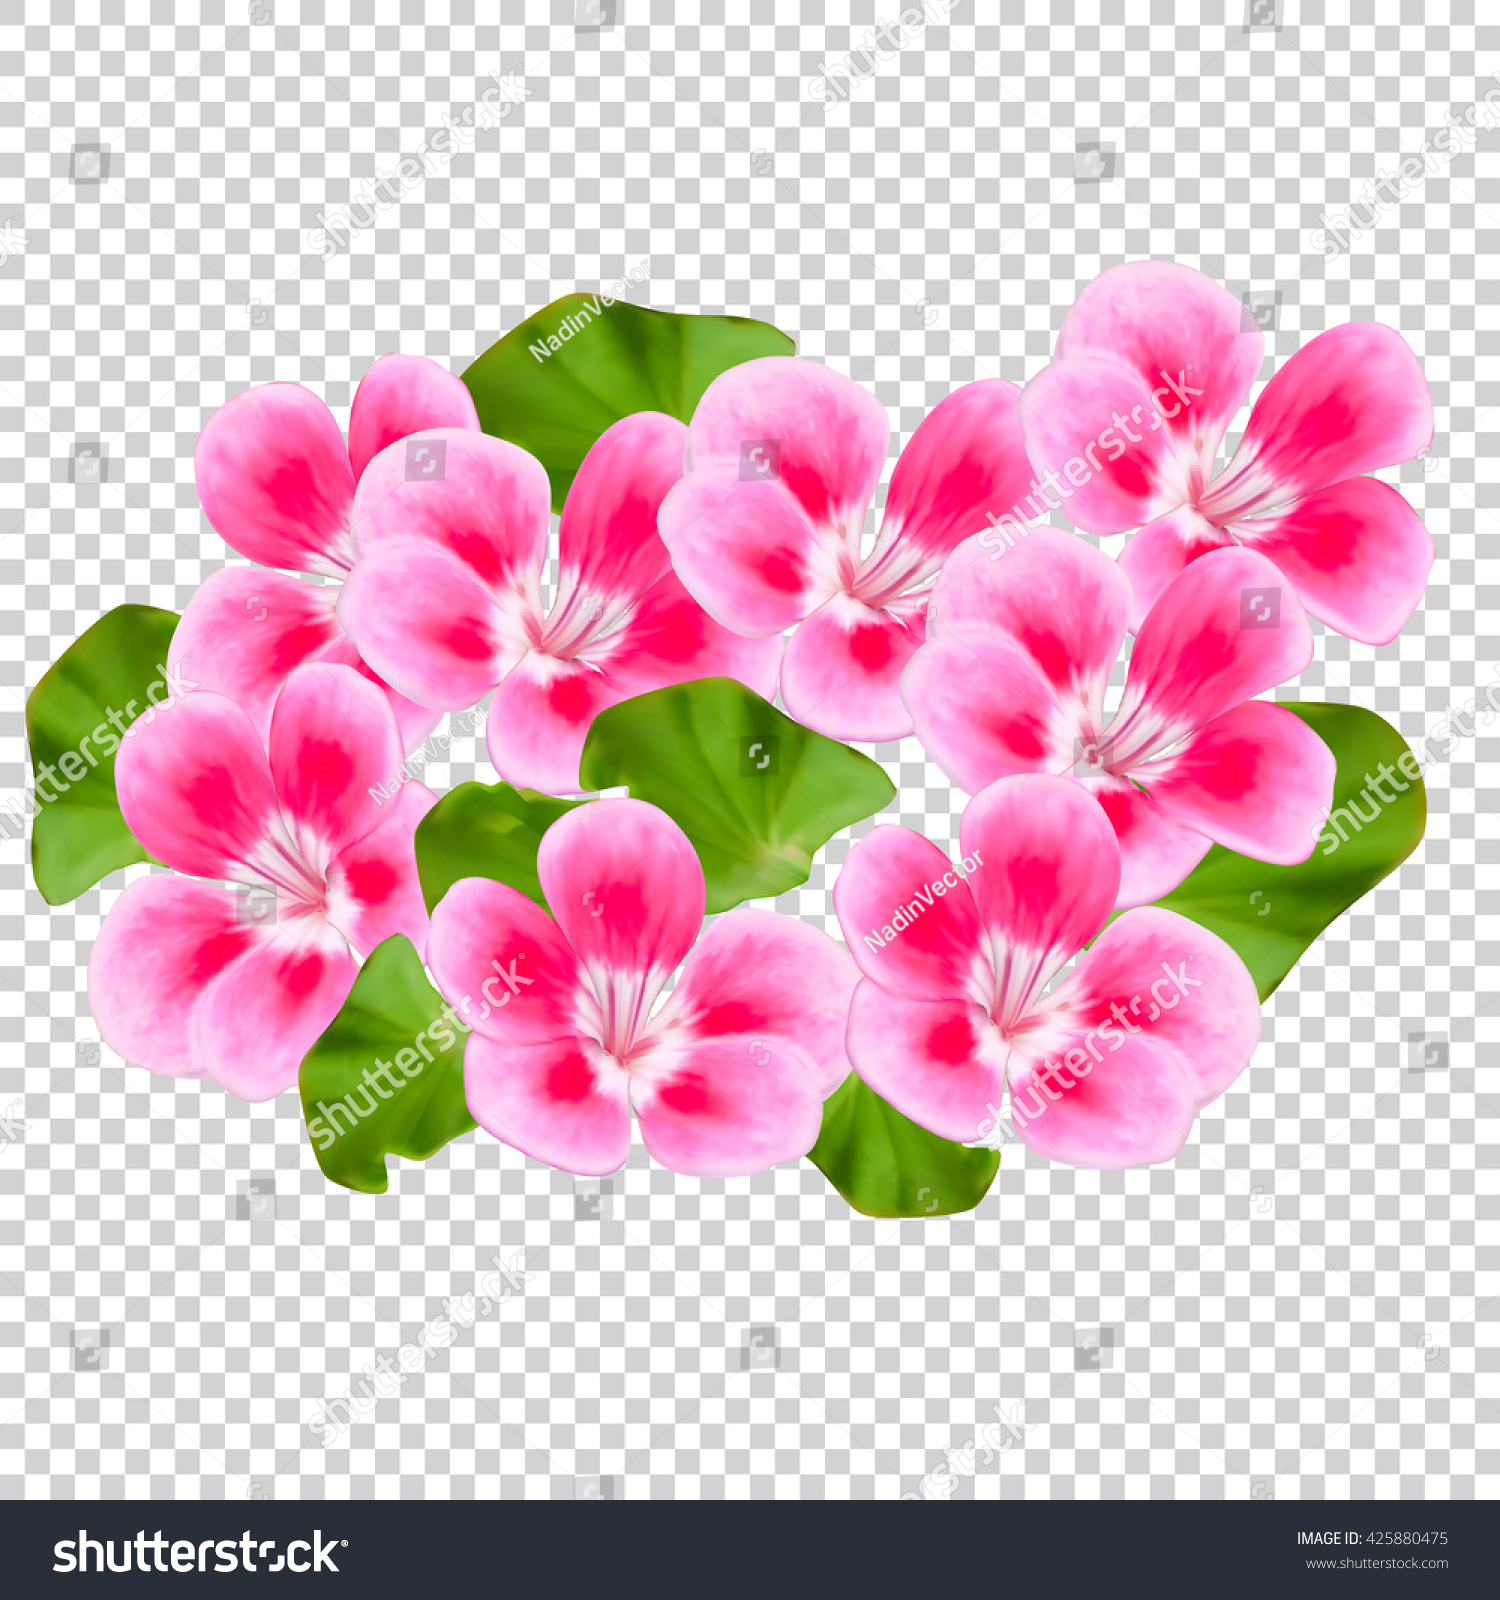 Pink Flowers On A Transparent Background